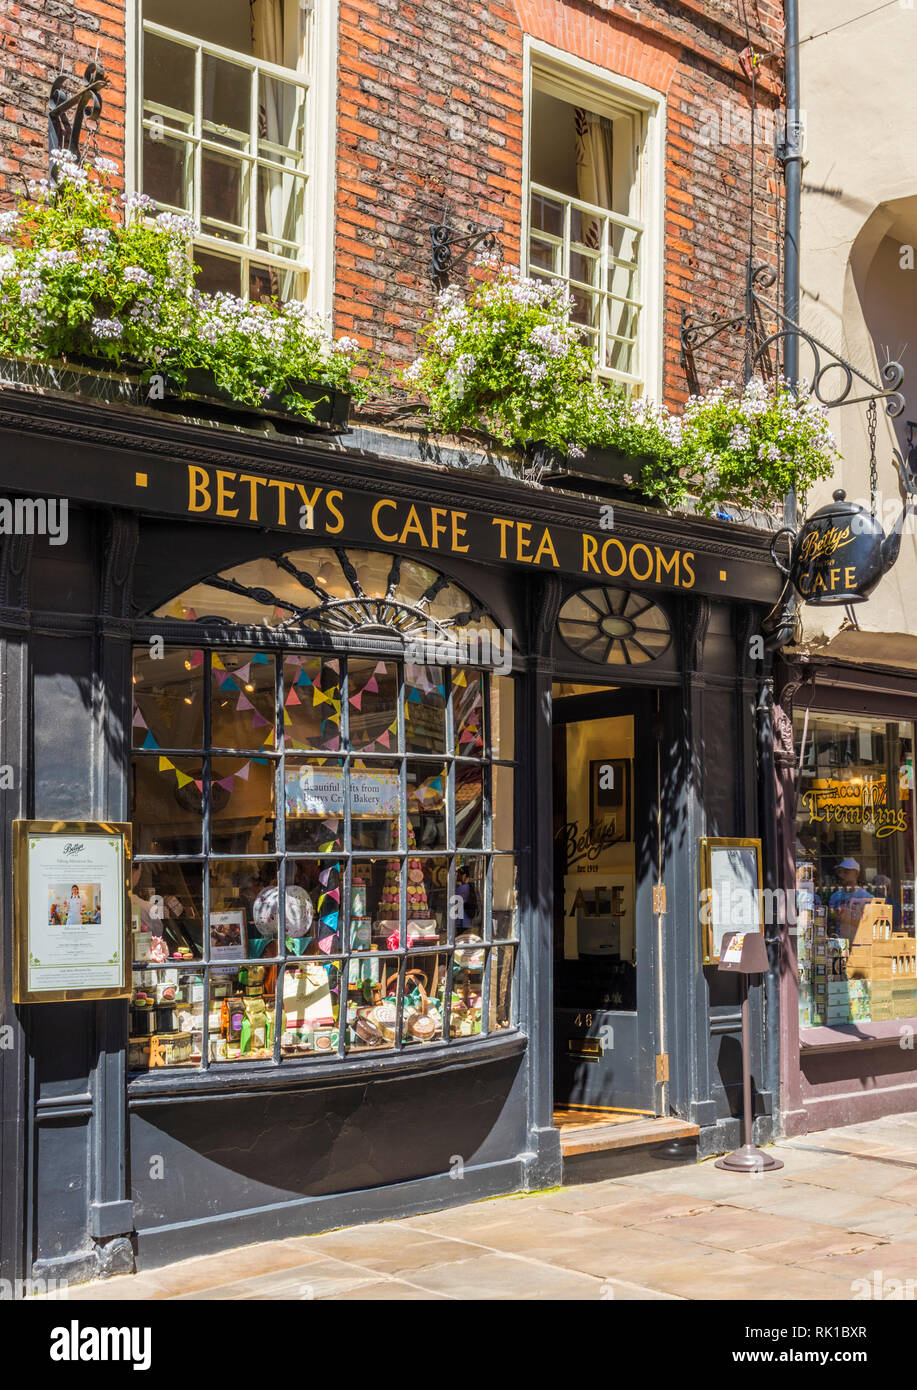 famous Bettys cafe and tea rooms on Stonegate city of York Yorkshire York Yorkshire England gb uk Europe - Stock Image